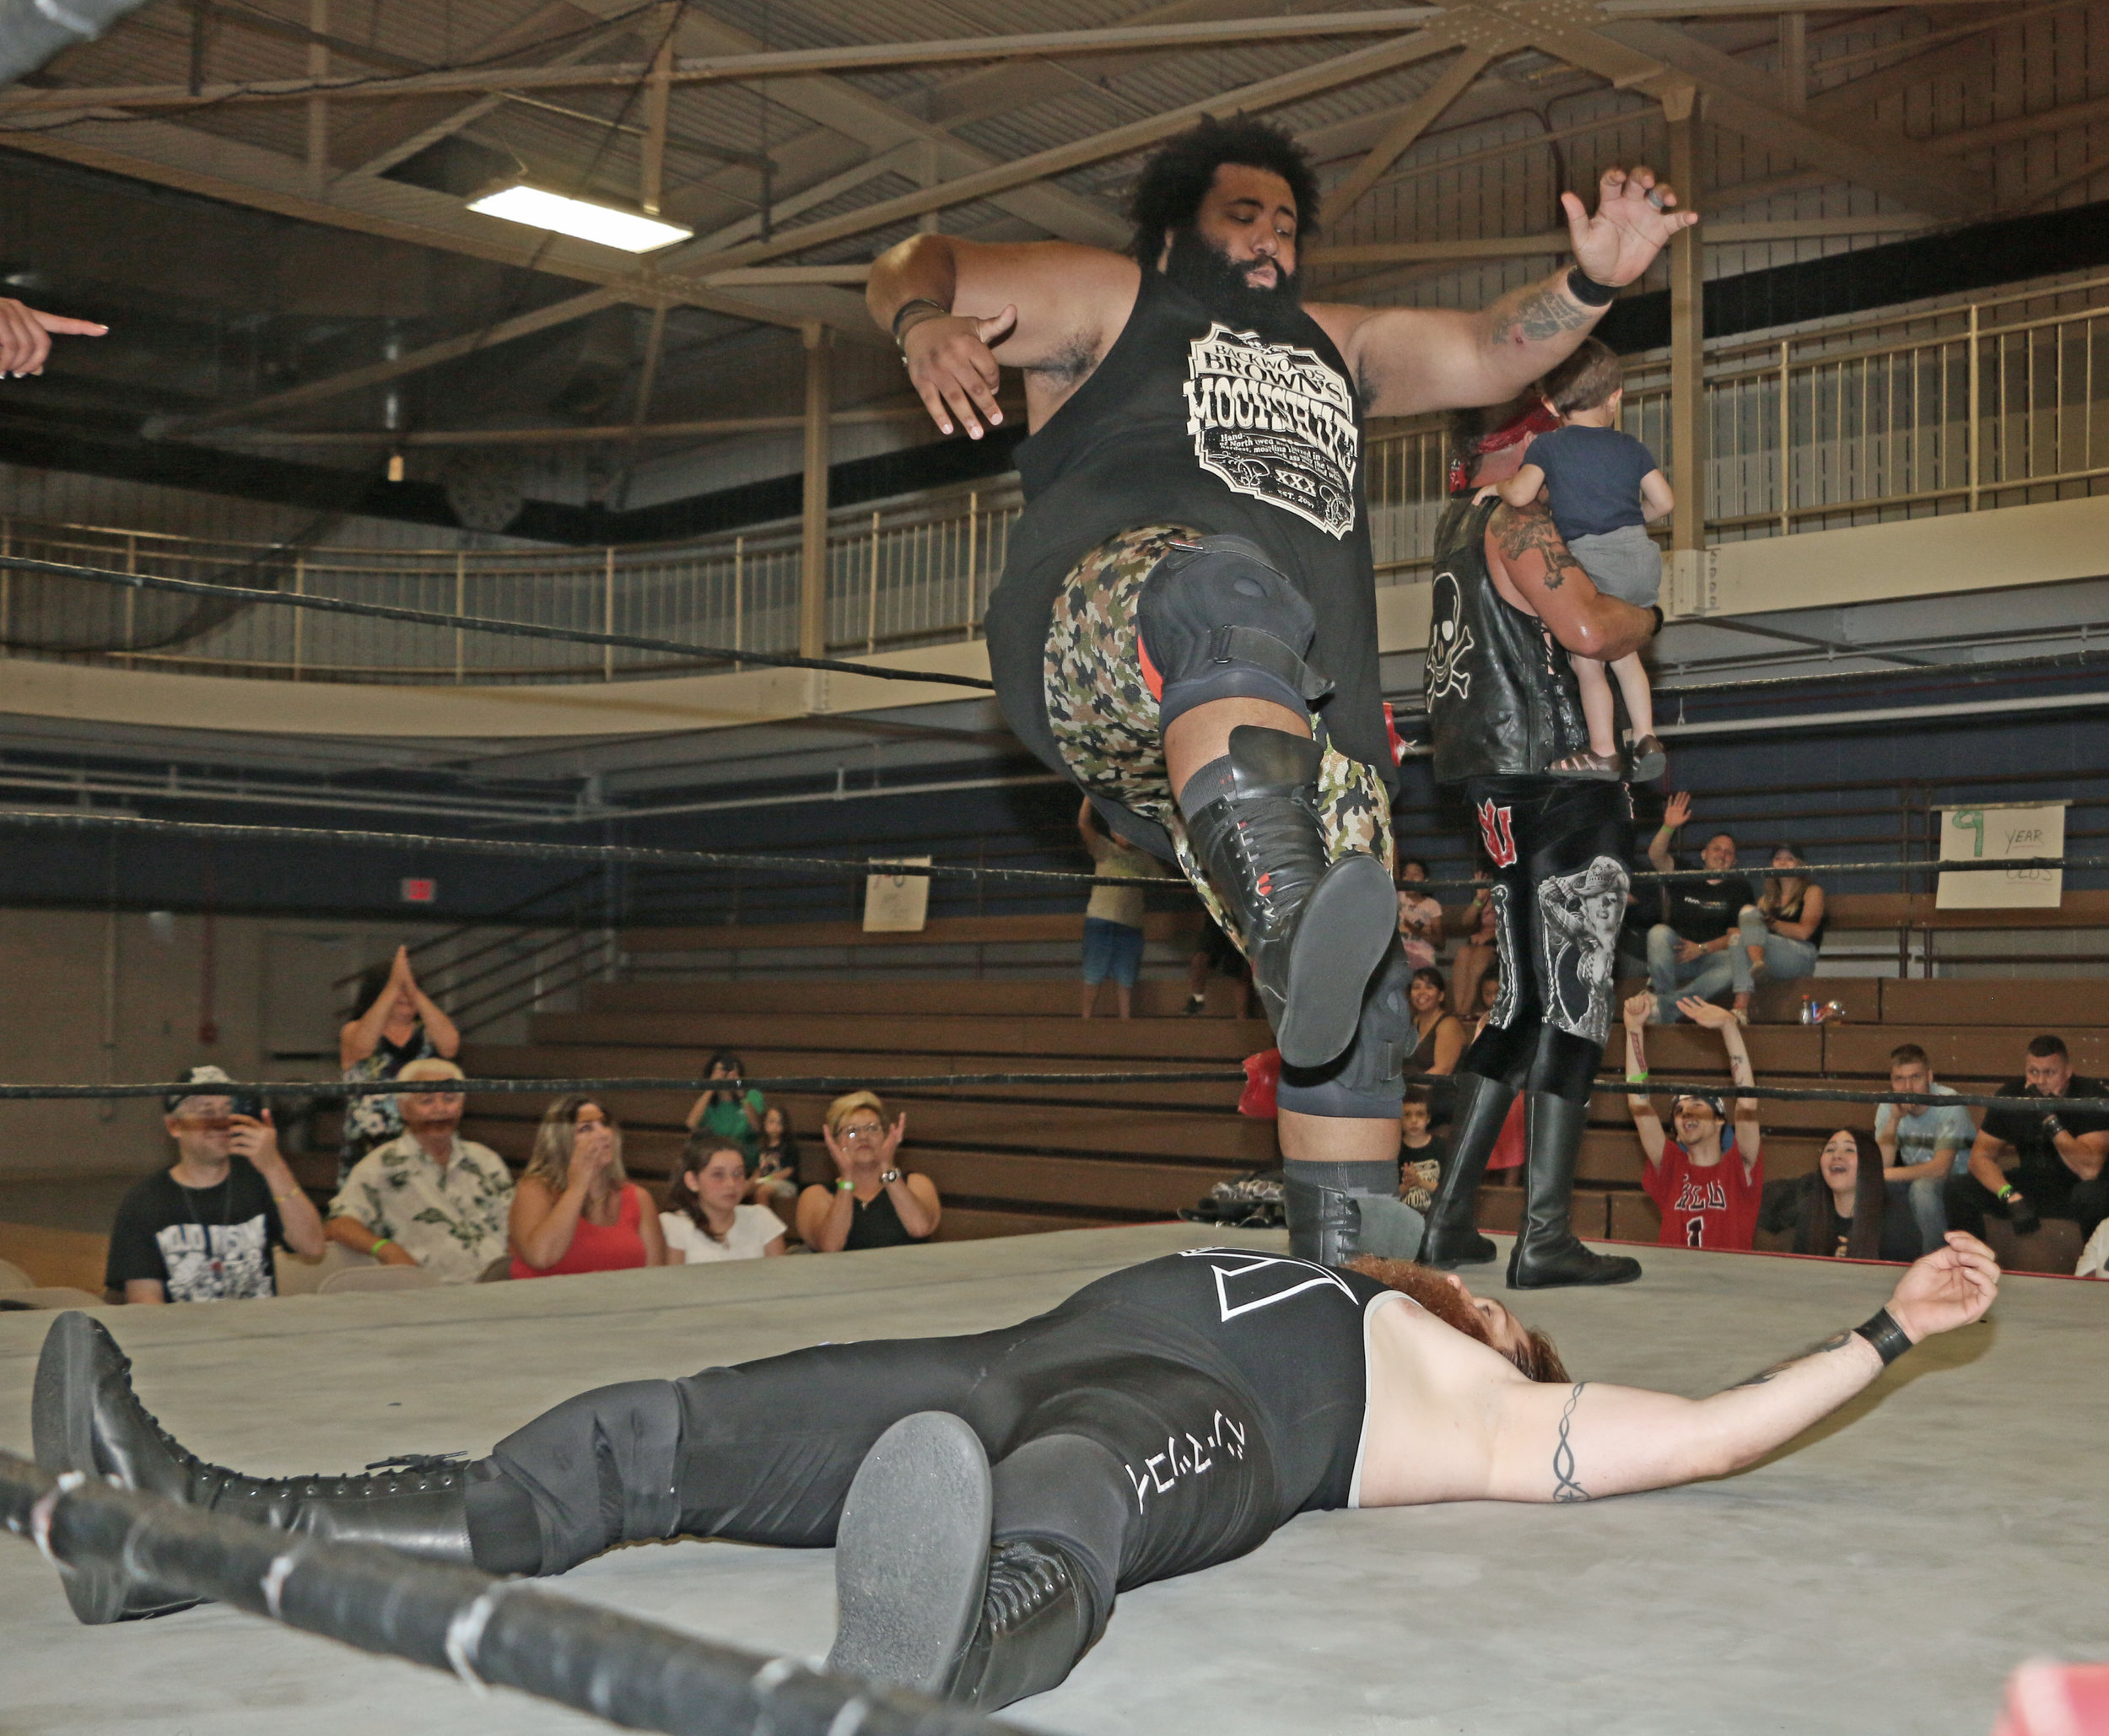 Backwoods Brown drops the leg on Ben McCoy after the the 10-man elimination tag-team match was concluded.